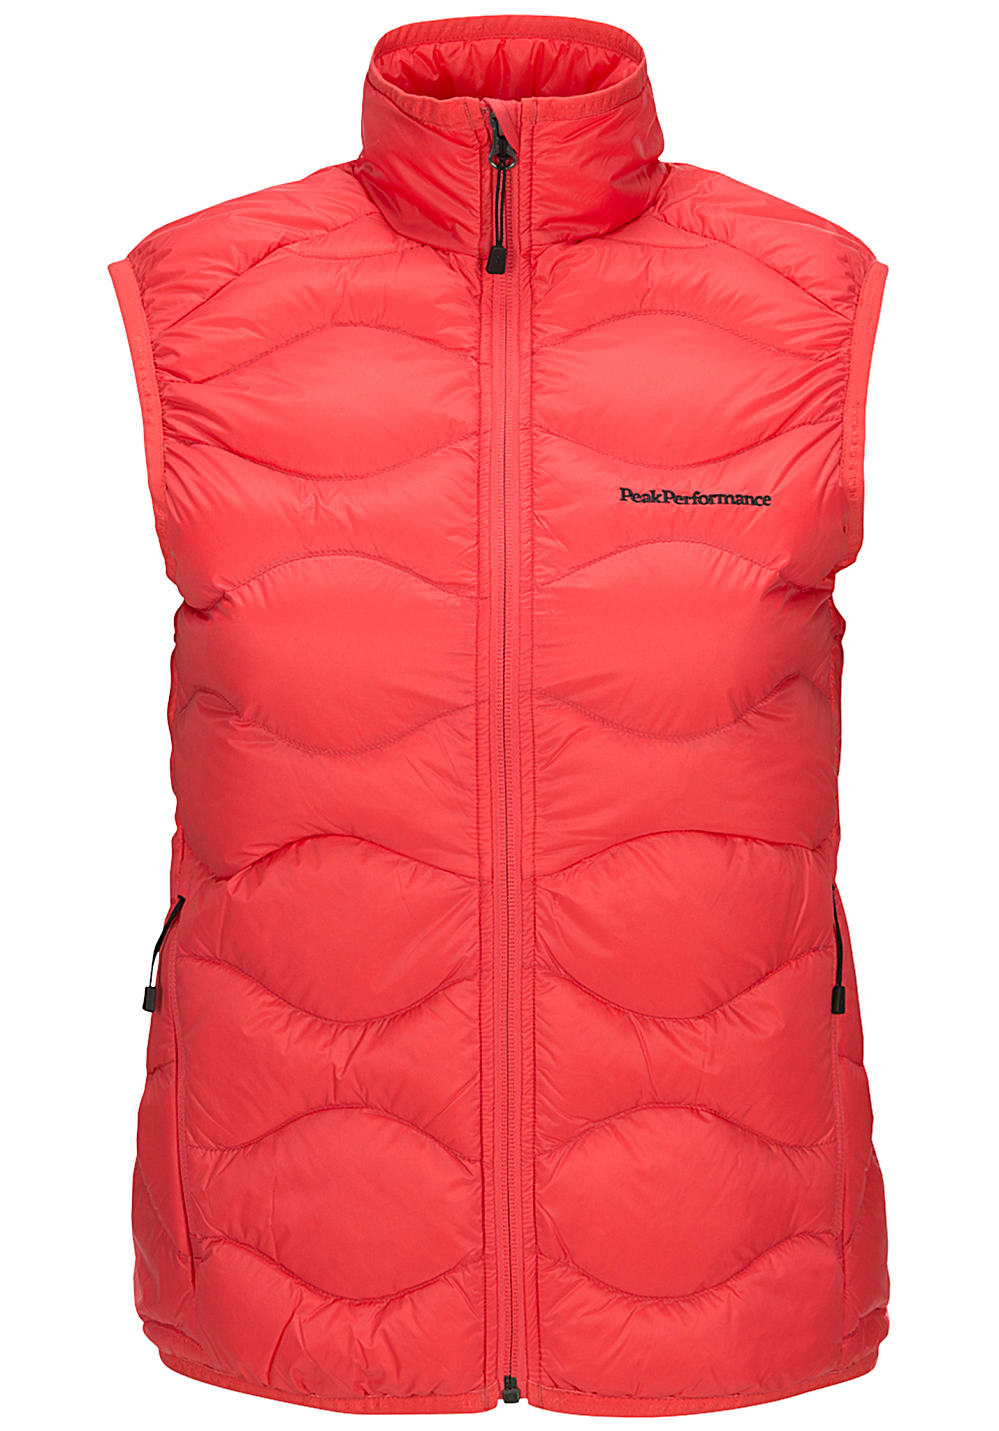 quality design 8d31a a0b13 PEAK PERFORMANCE Helium - Outdoor Jacket for Women - Pink